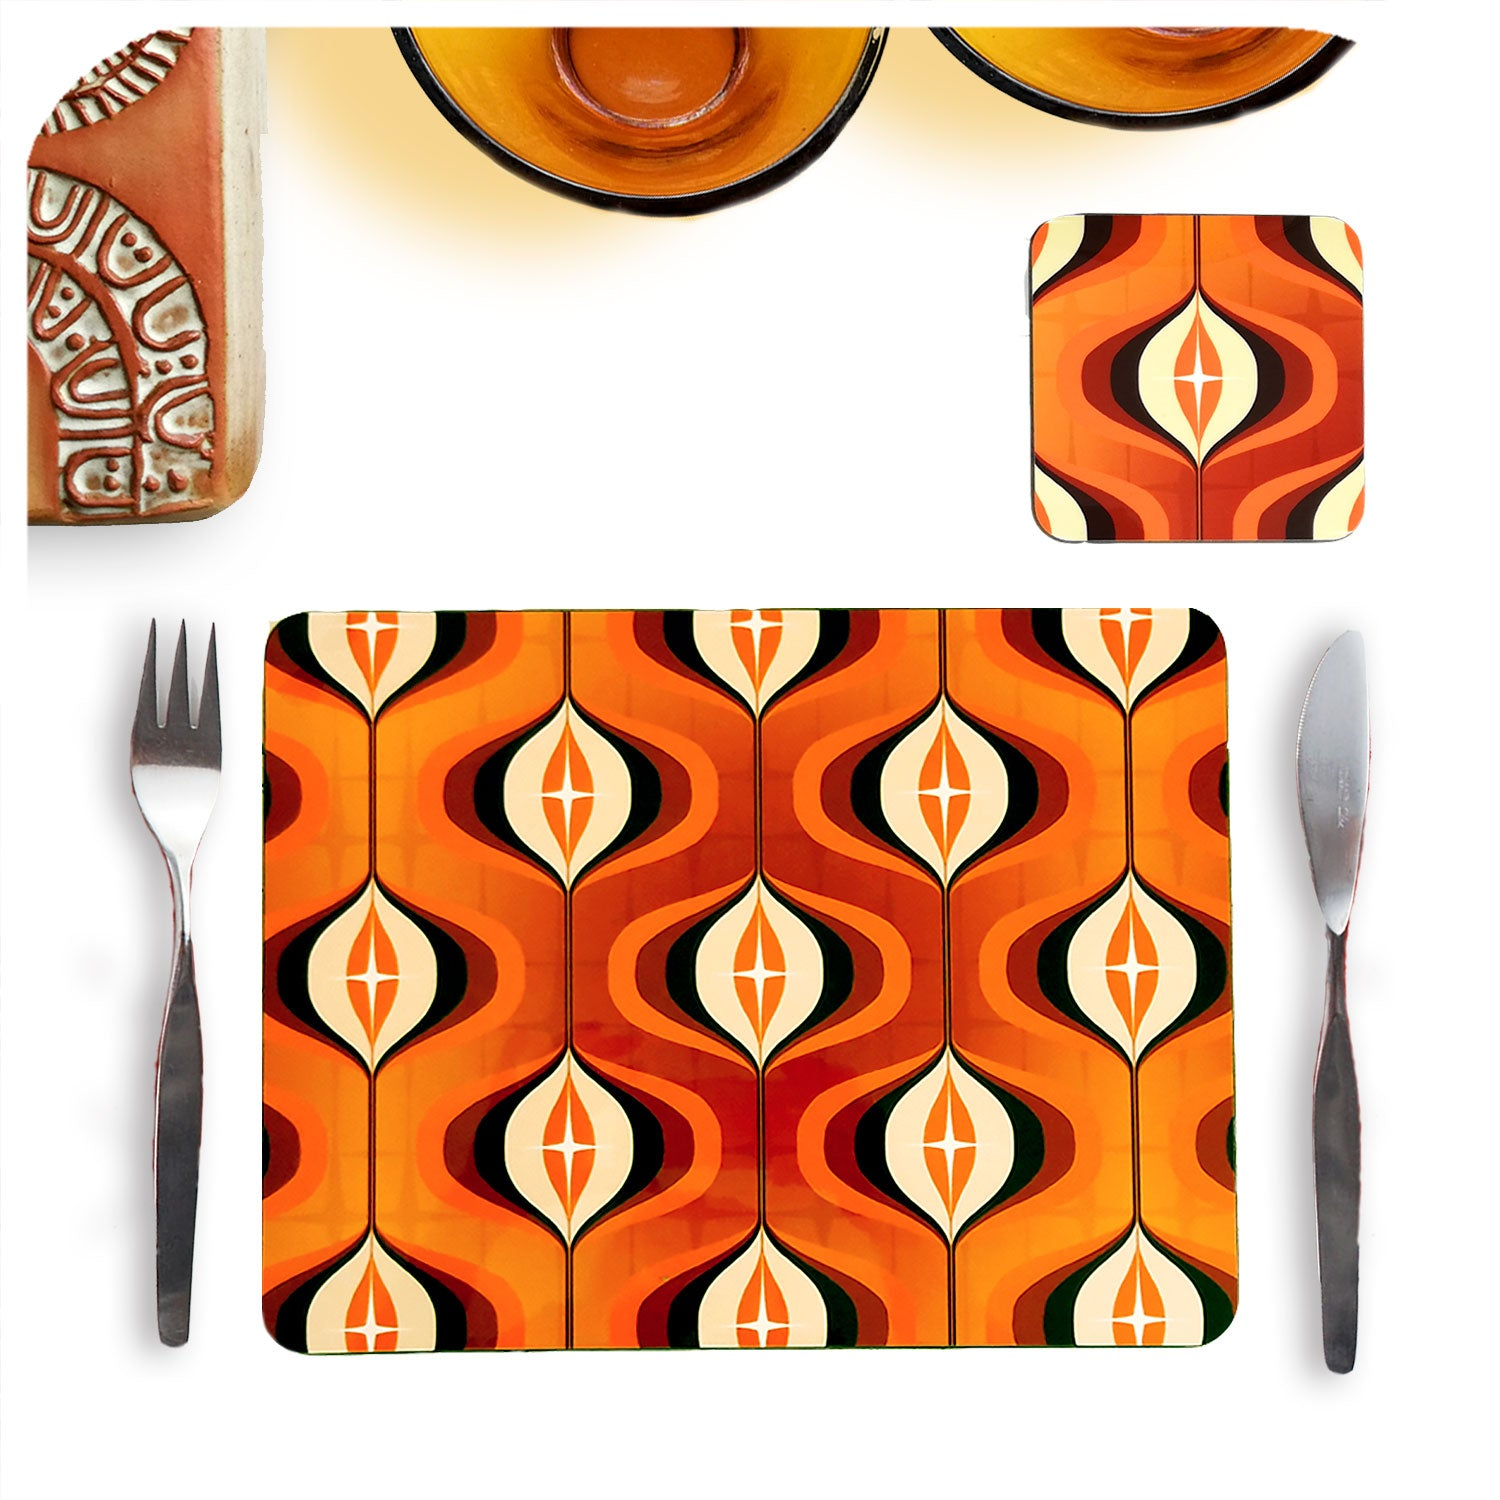 70s Orange Op Art Placemat and Coaster Set by Inkabilly